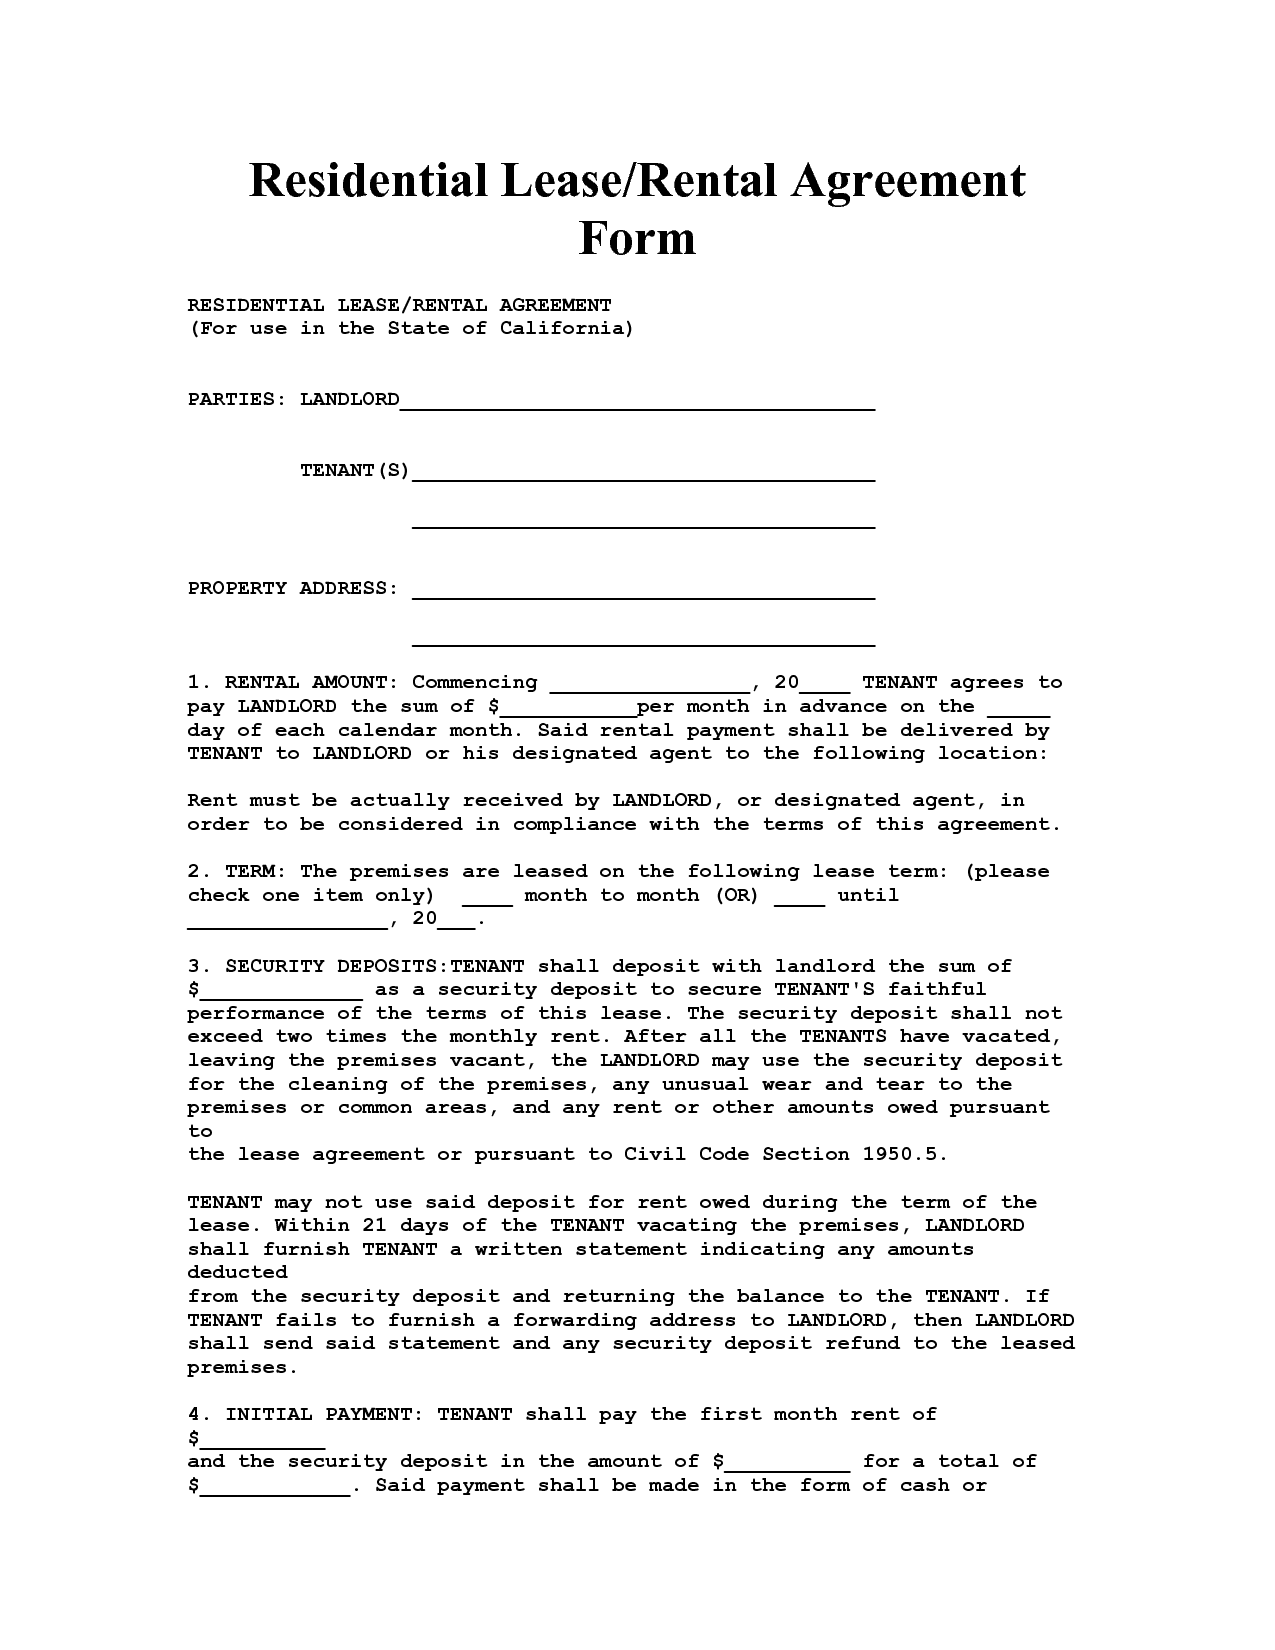 Residencial Lease Agreement Template